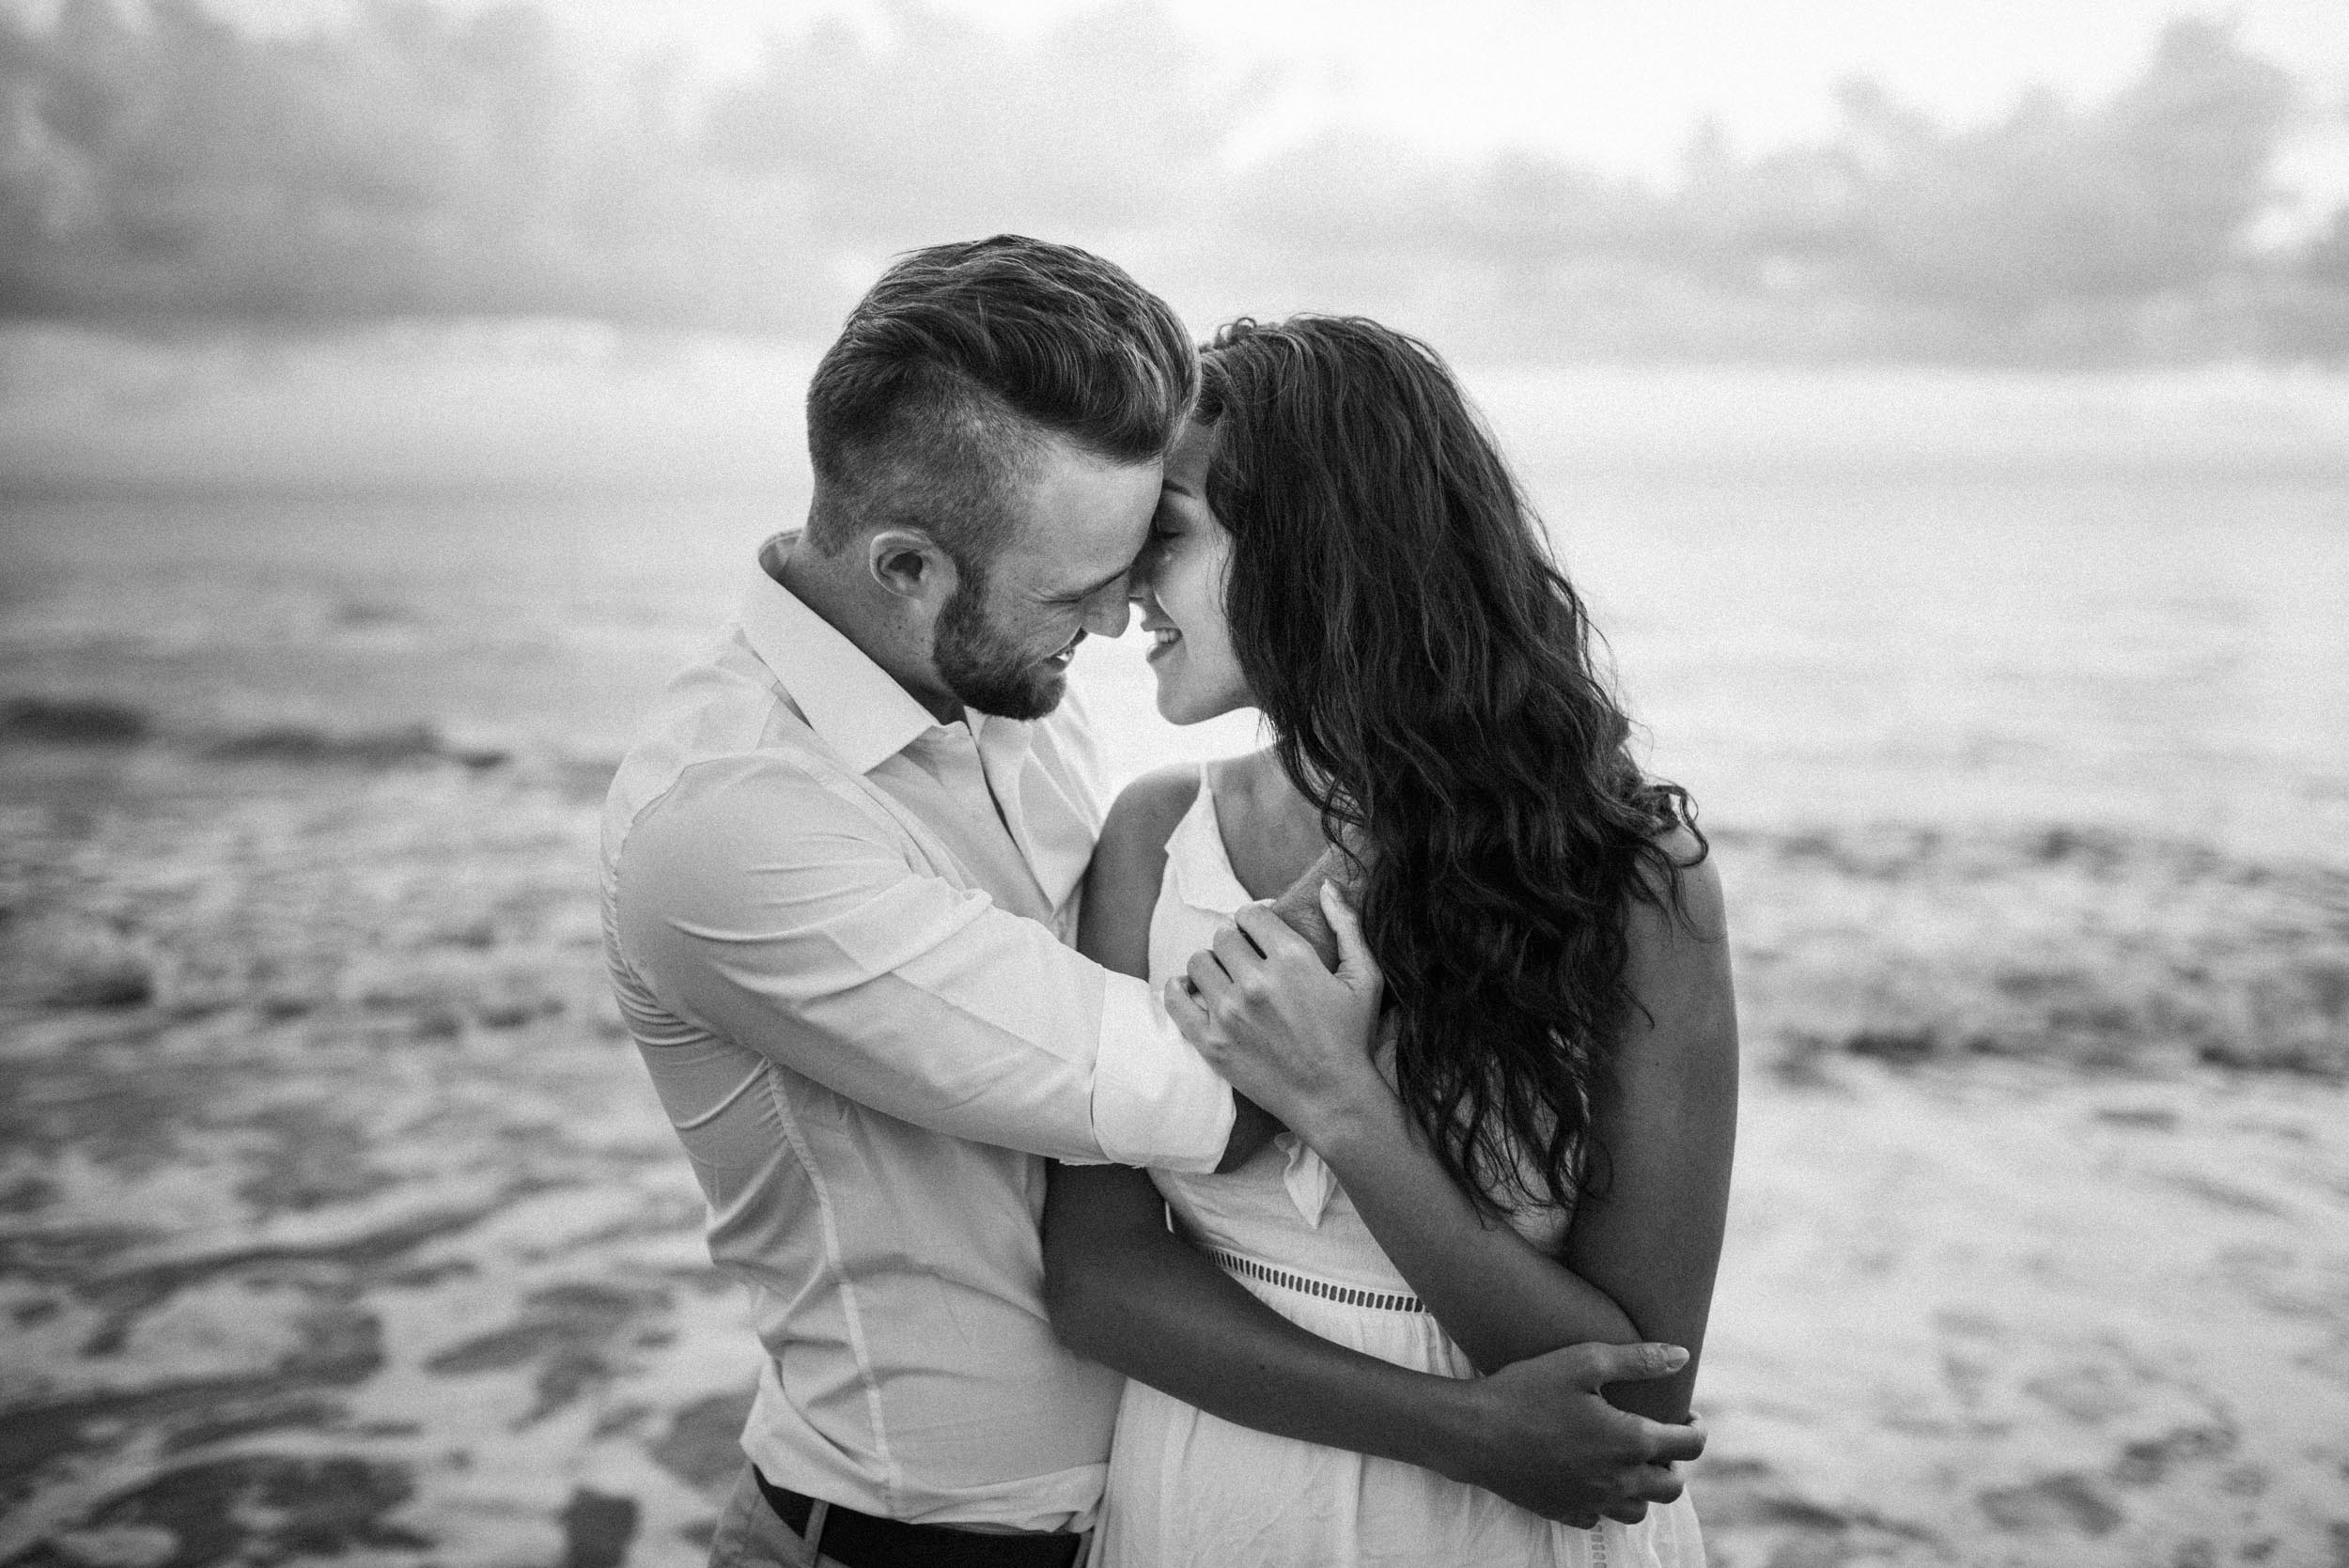 The Raw Photographer - Cairns Wedding Photographer - Engaged Engagement - Beach location - Candid Photography Queensland-10.jpg